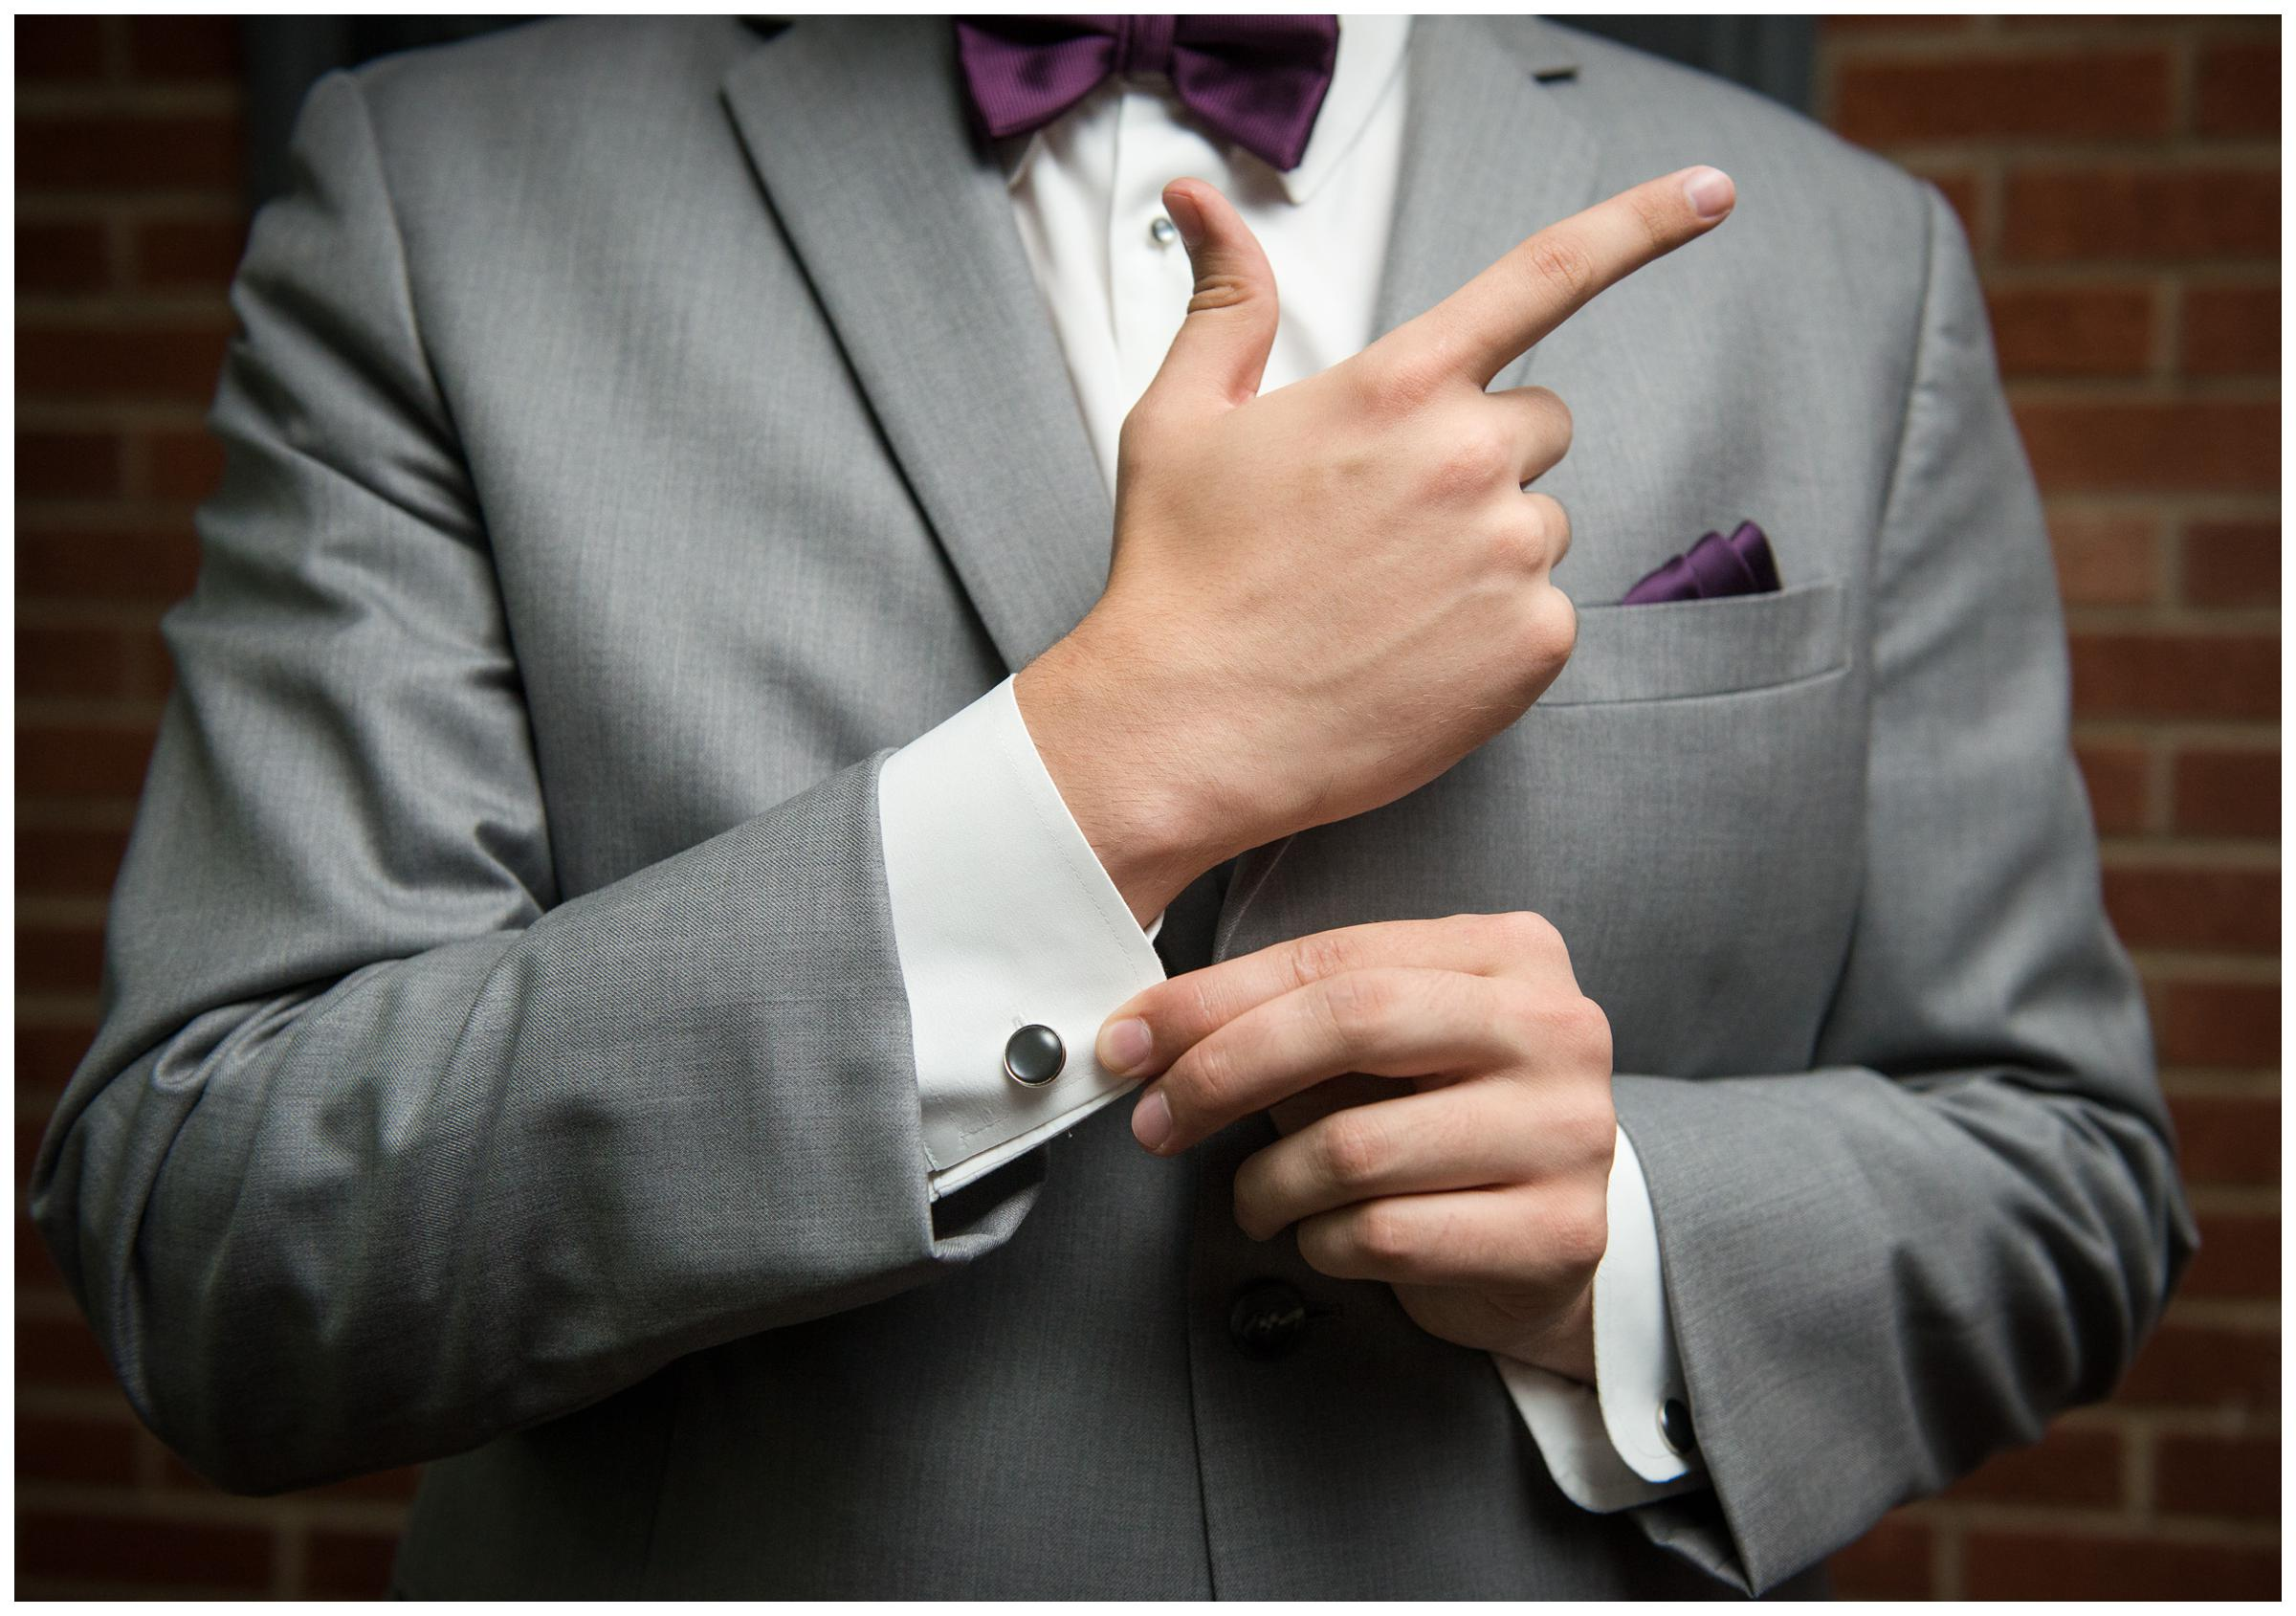 detail of groom's cufflinks while he makes James Bond gesture